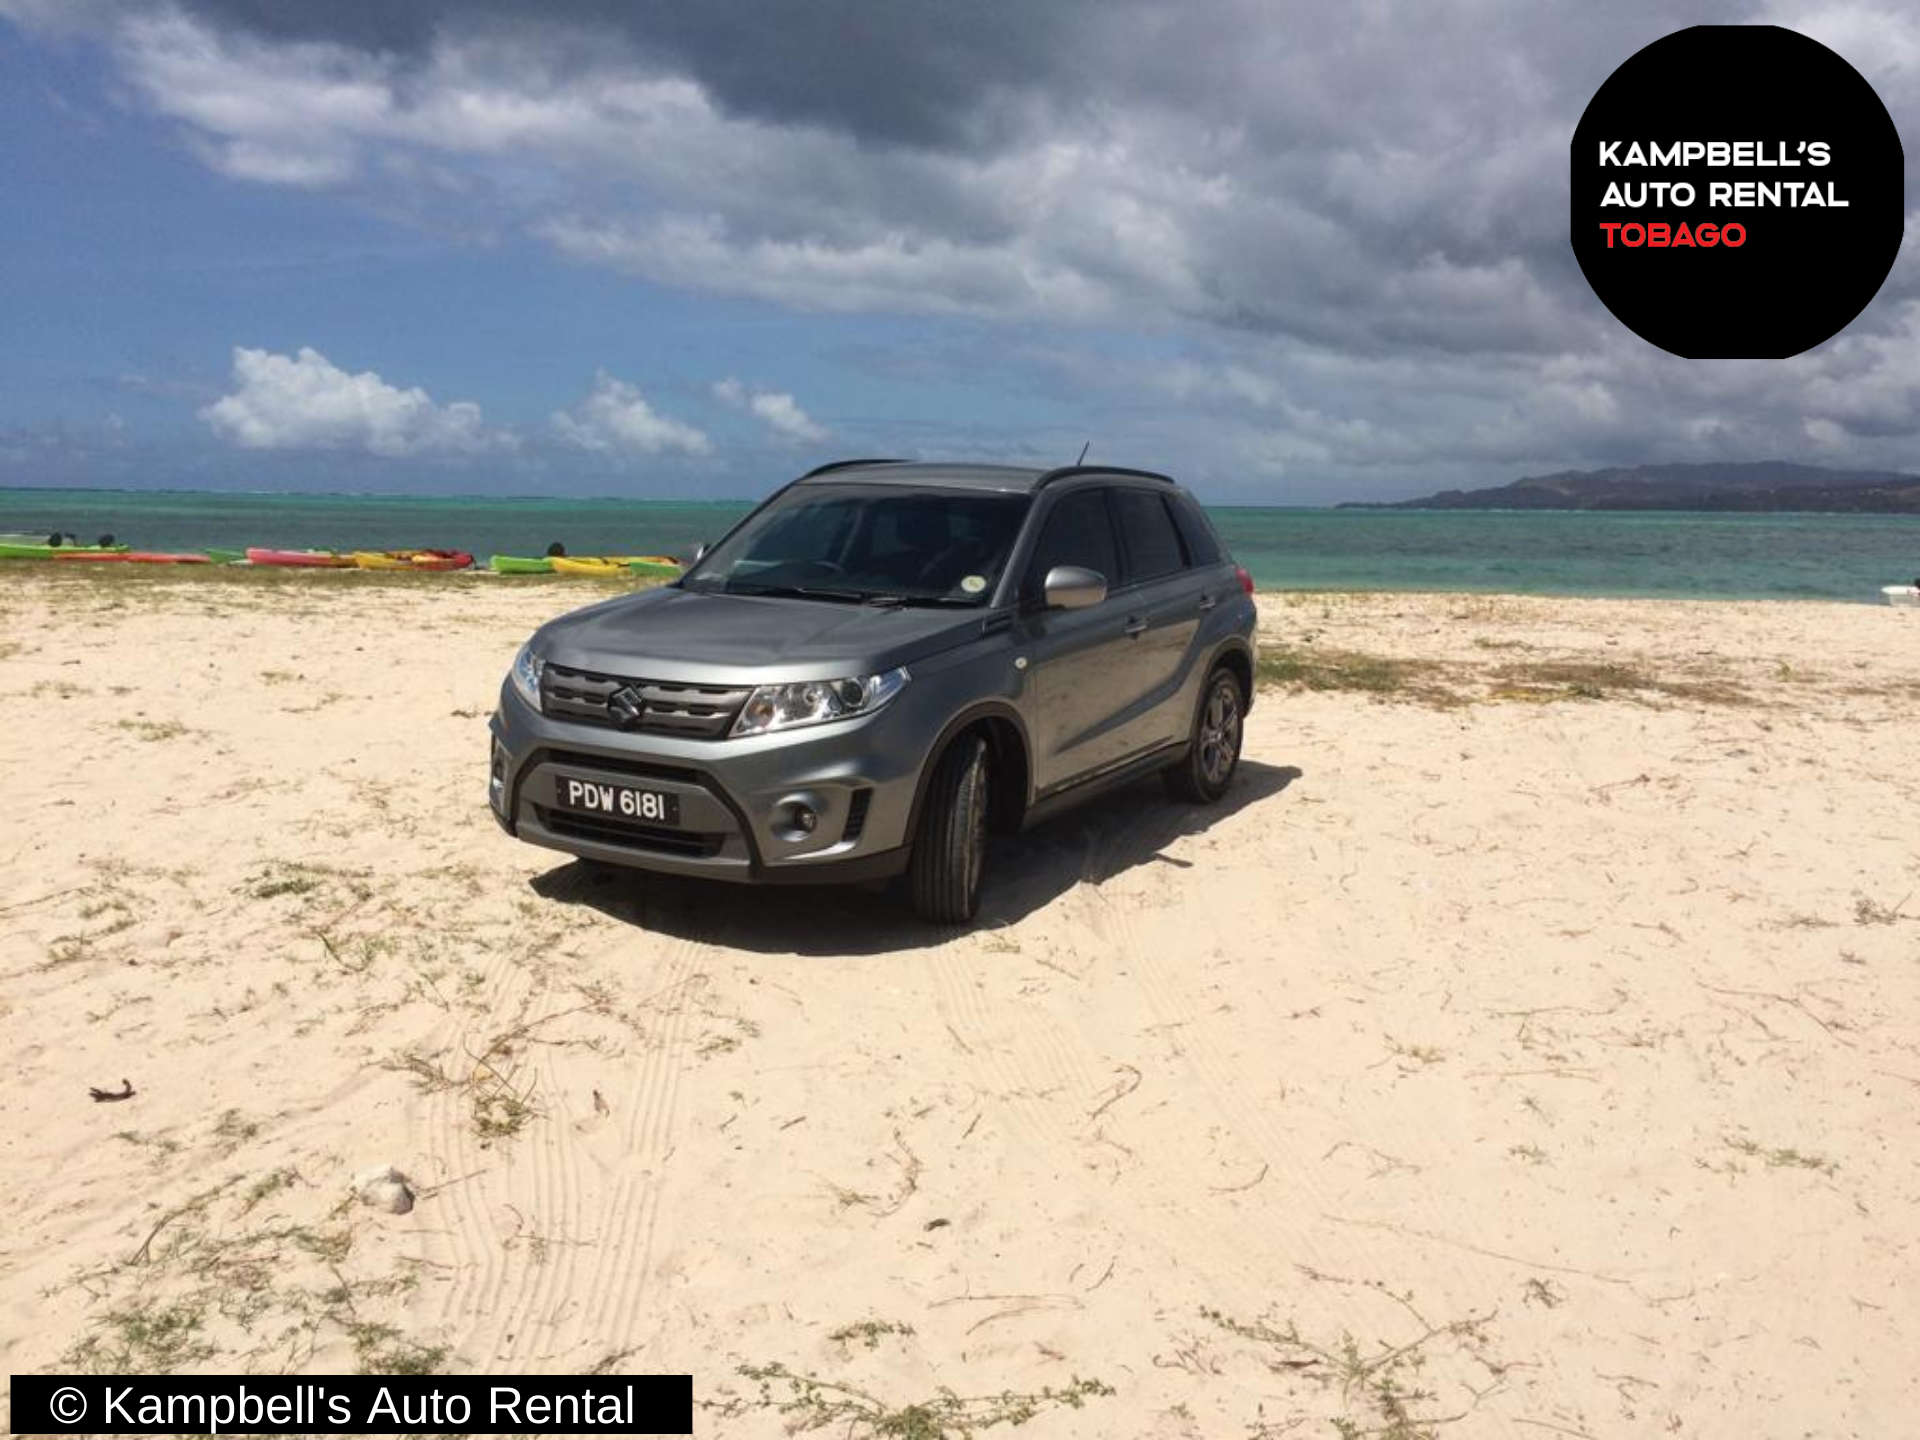 Looking For A Great Deal On A Rental Car For Your Visit To Tobago? Kampbell's Auto Rental Has A Variety Of Vehicles For Your Car Rental Needs From Economy To Luxury Cars  Make Your Reservations Today  Call us at + 1-868-364-1596 Or Email kampbellsauto@gmail.com.  #carrental #rentacar #rentalcar #travel #carrentals #luxurycars #carhire #hireacar #trinidad #caribbean #trinidadandtobago #tobago #carrentaltrinidad #carrentaltobago #kampbellsauto #kampbells #tobagobeaches #caribbean #caribbeanbeache